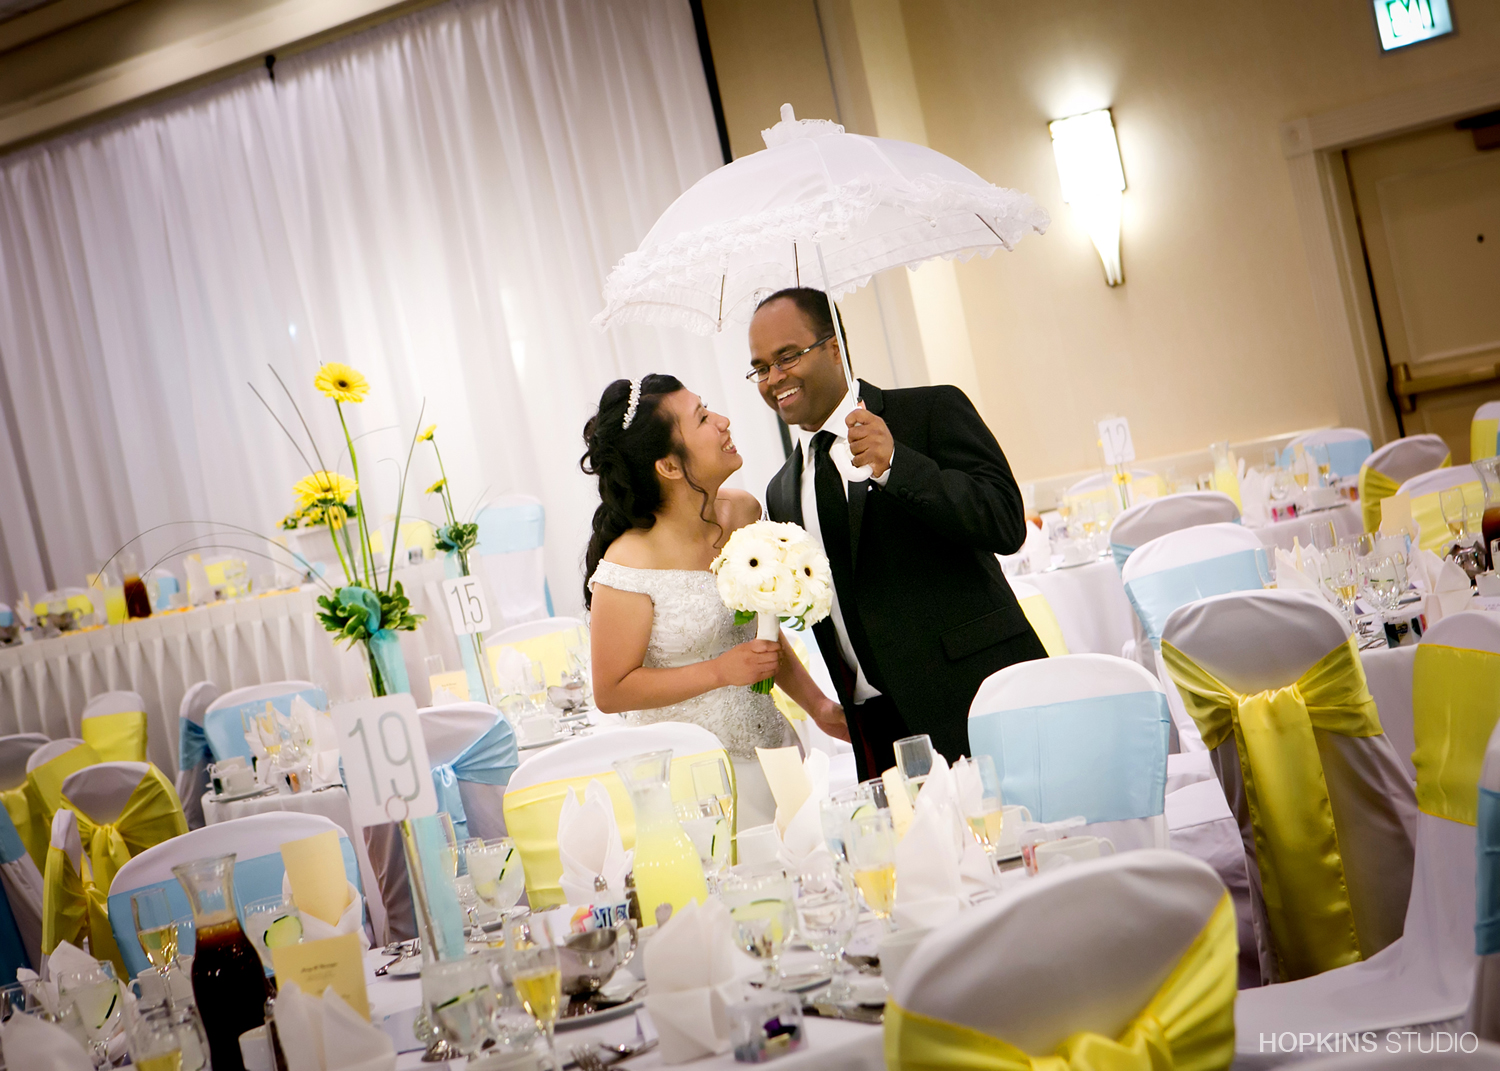 wedding-photography-Double-Tree-by-Hilton-South-Bend-Indiana_01.jpg